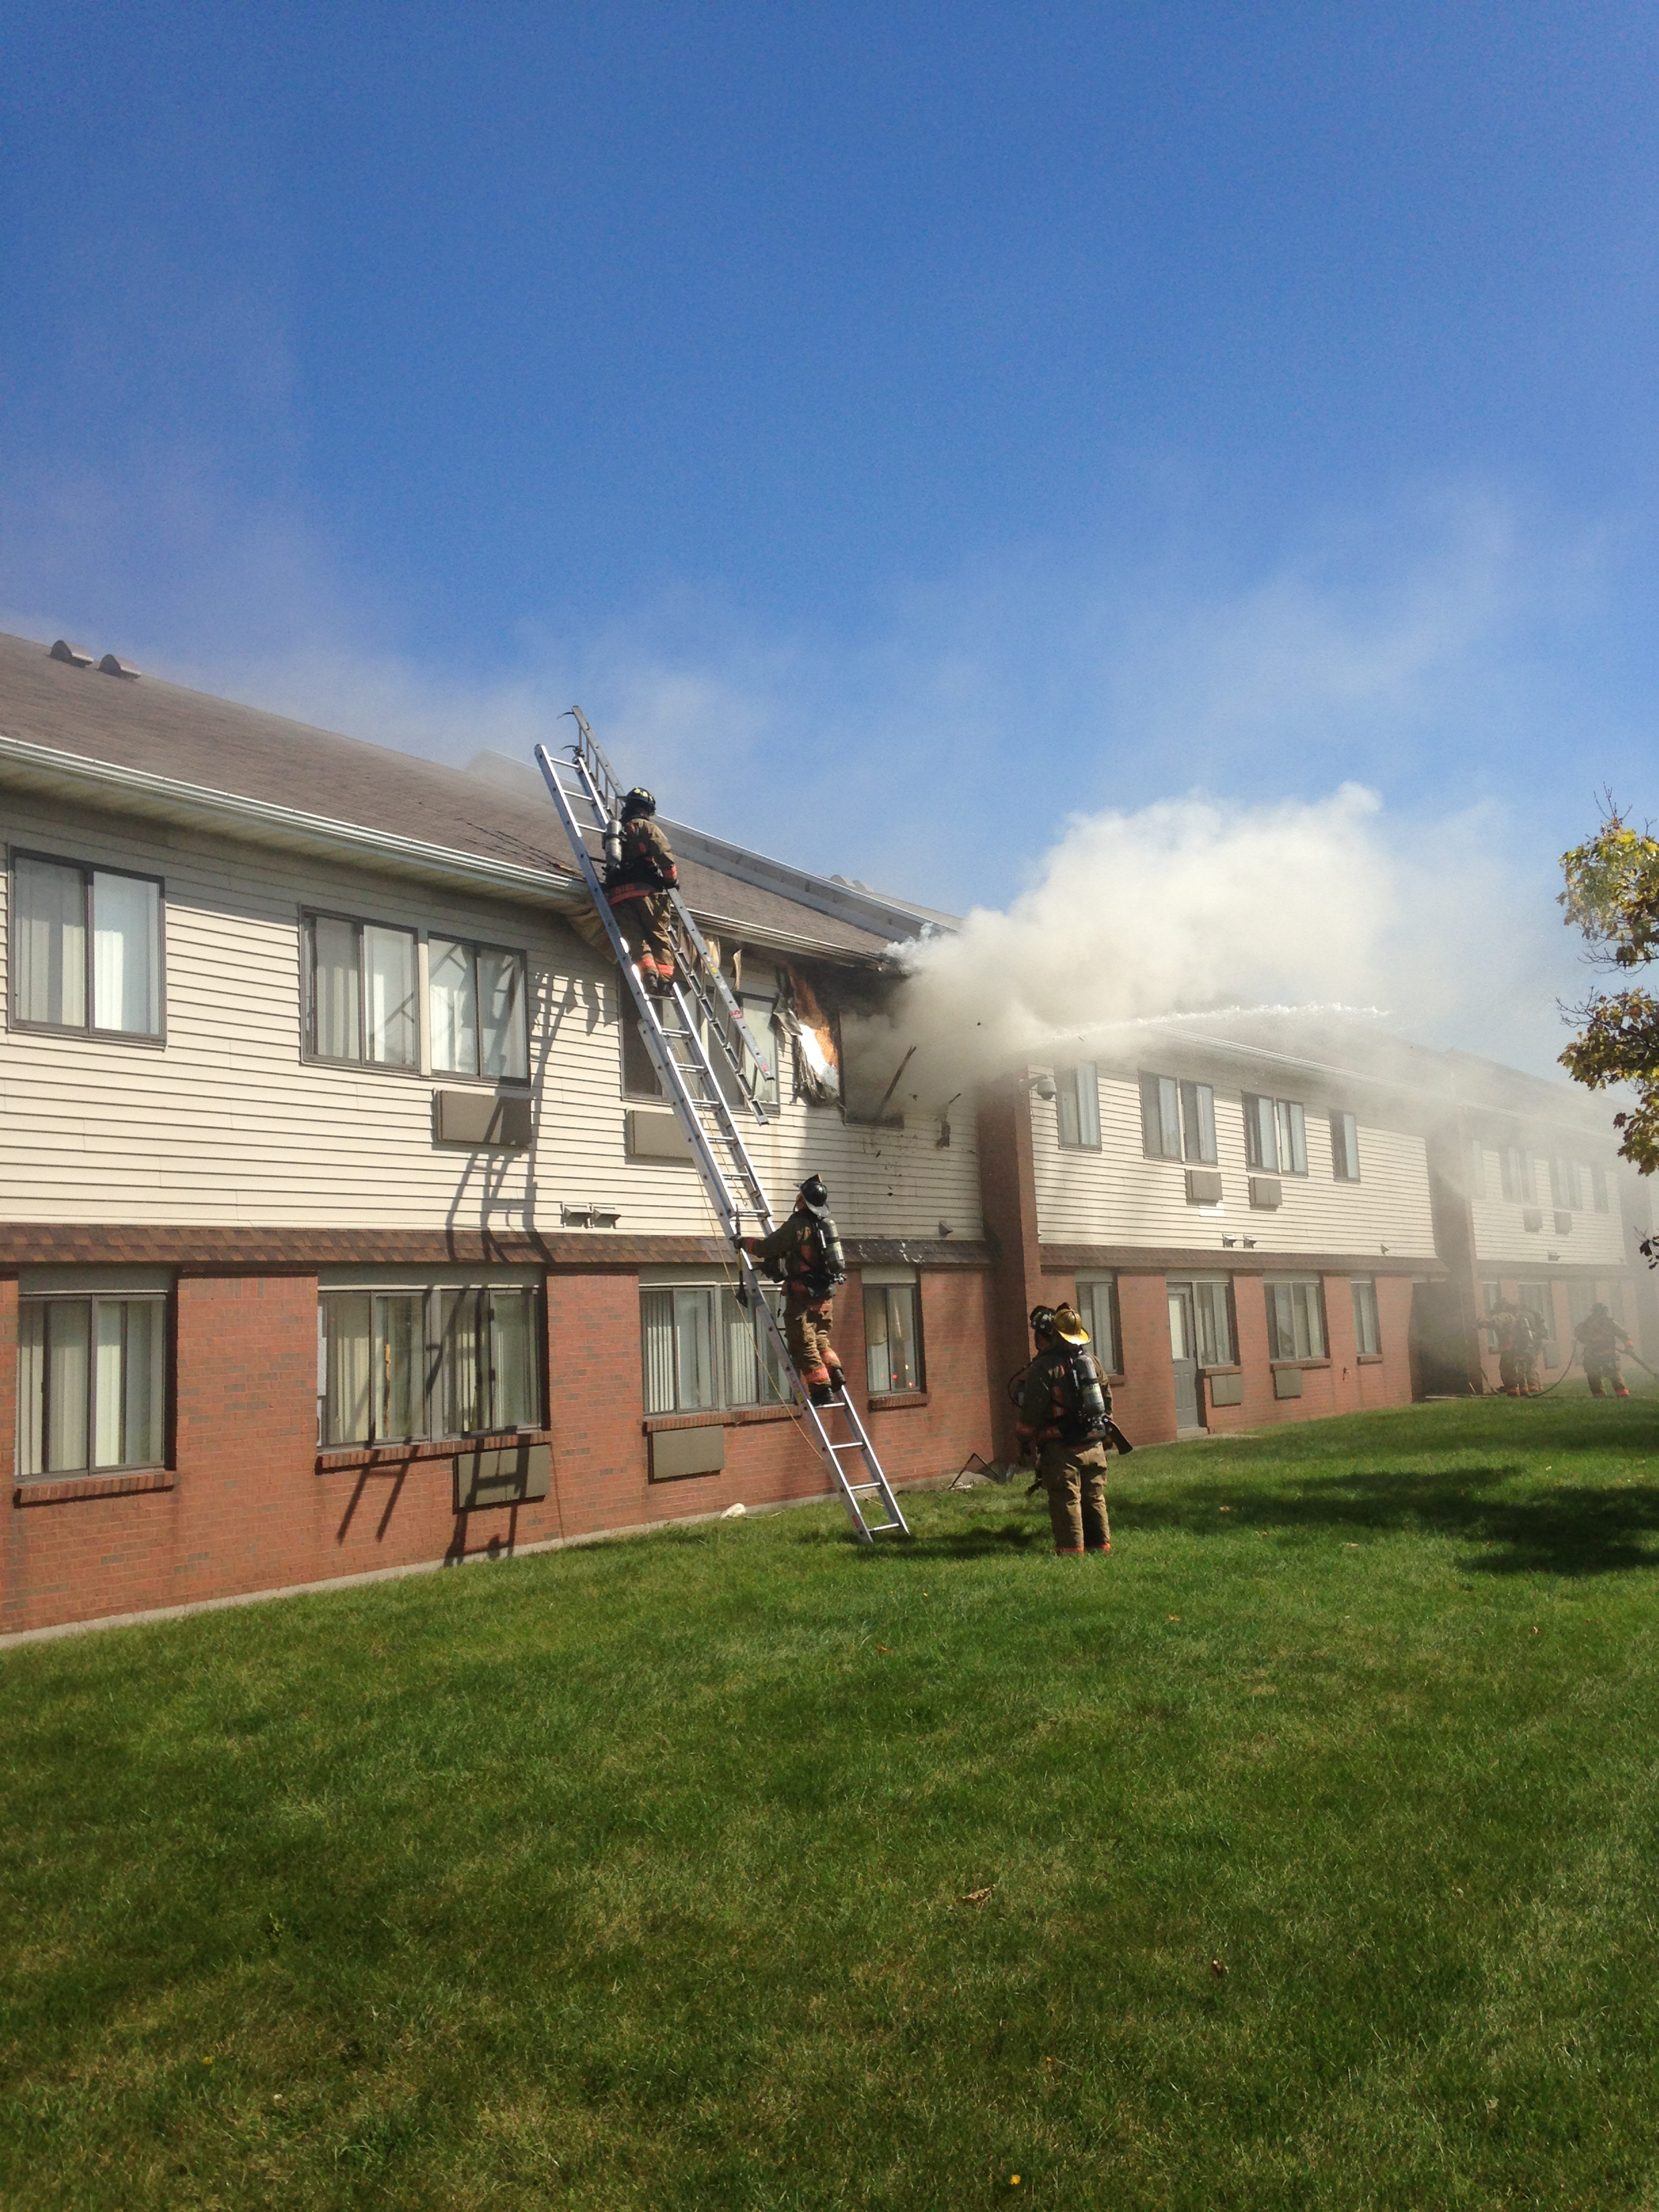 Firefighters work the scene at a blaze at 132 Spring St., site of Friendship Manor and A.C. Ware Manor apartments.  (John Hickey/Buffalo News)